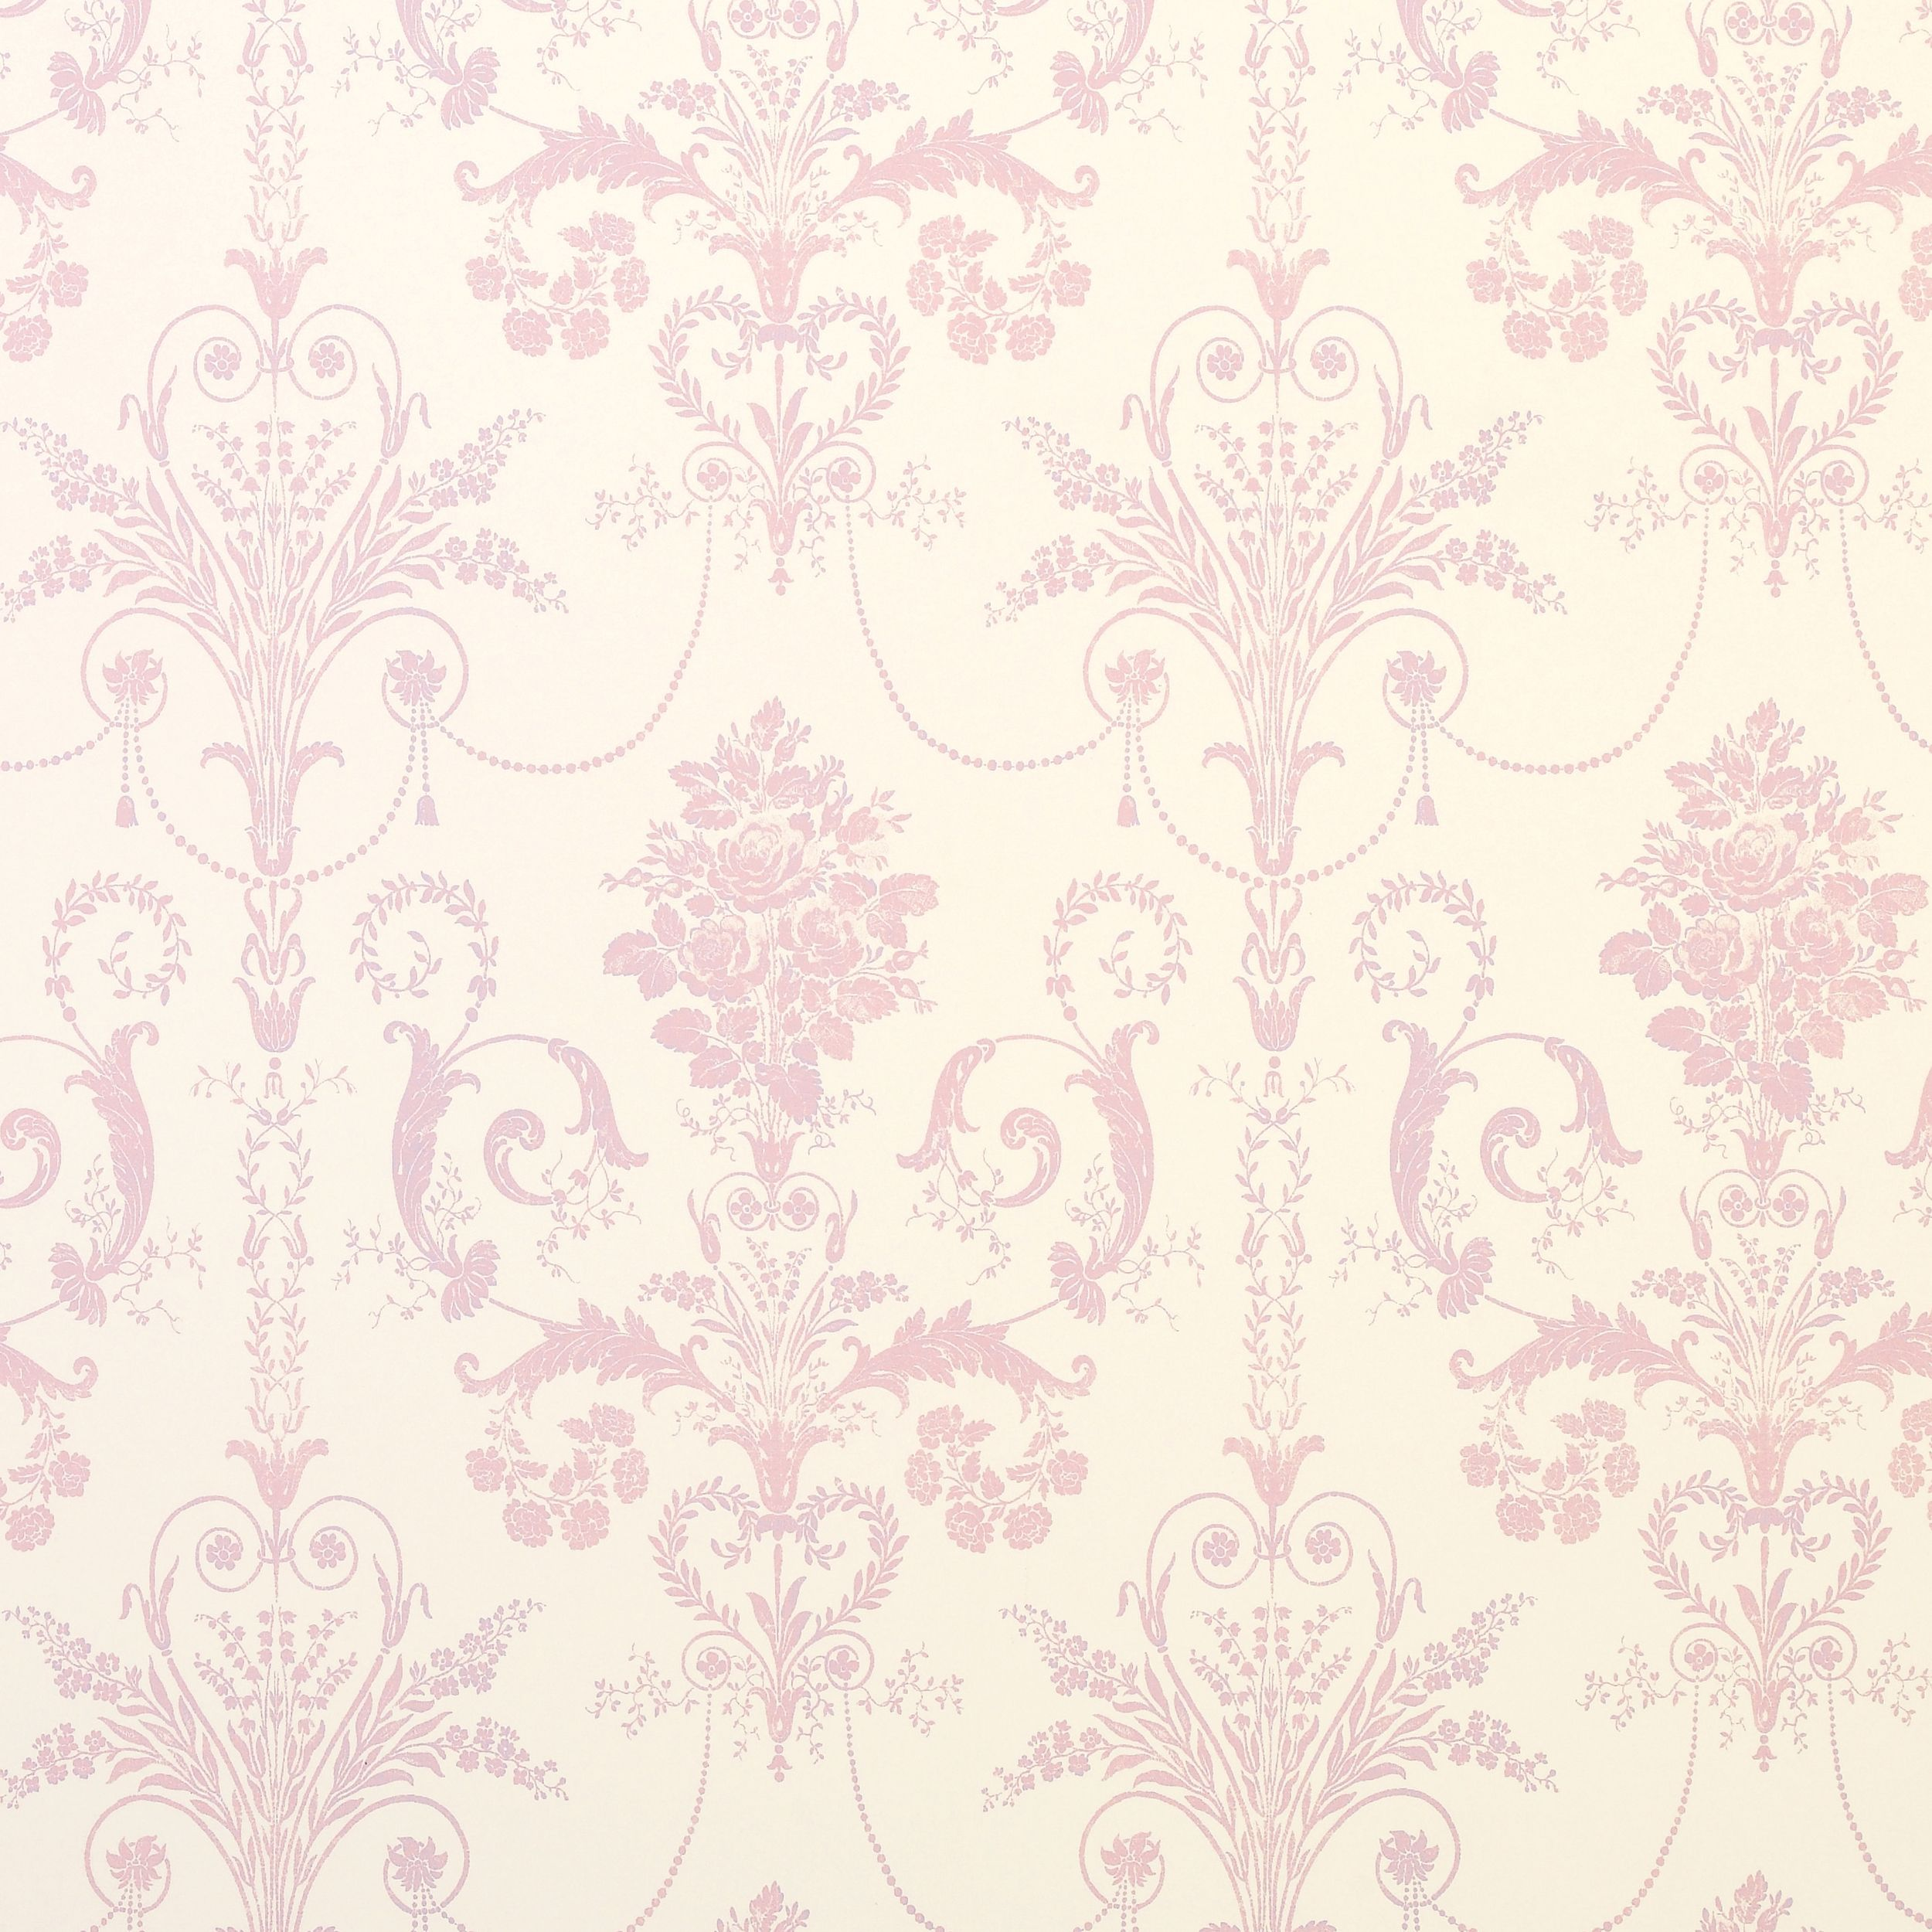 Josette Carnation Damask Wallpaper Pink damask wallpaper